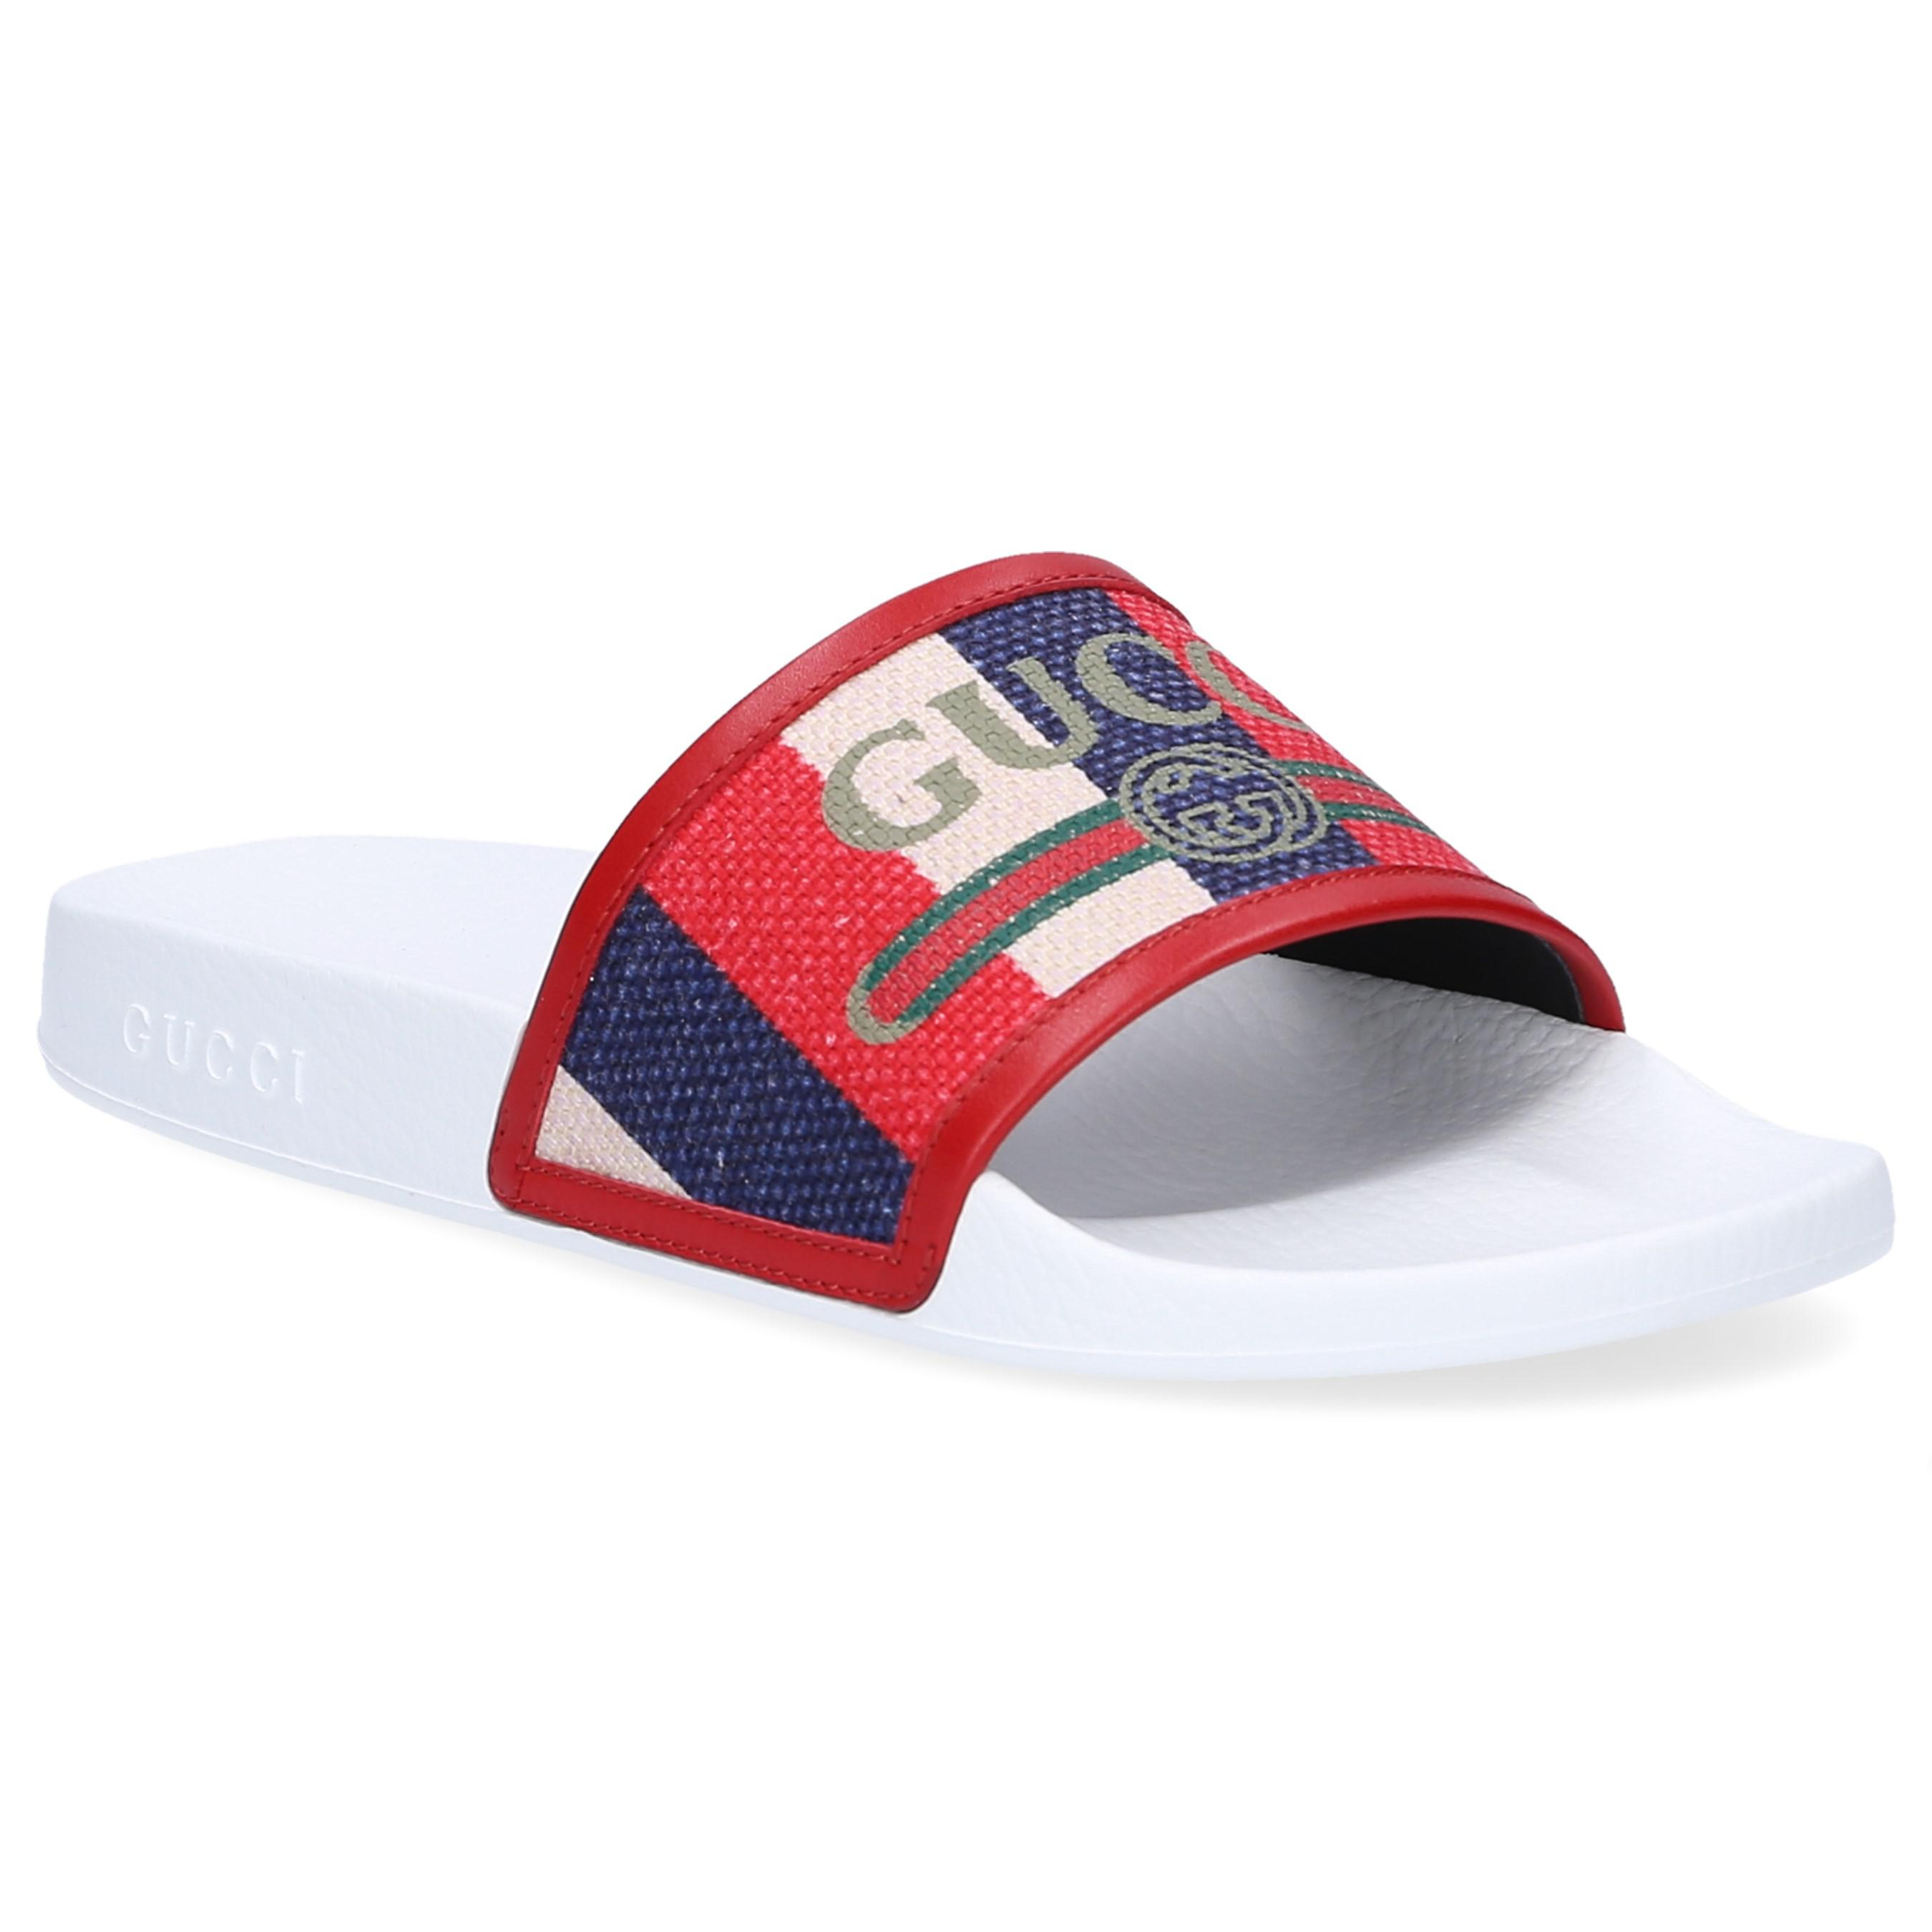 gucci slides red white and blue cheap